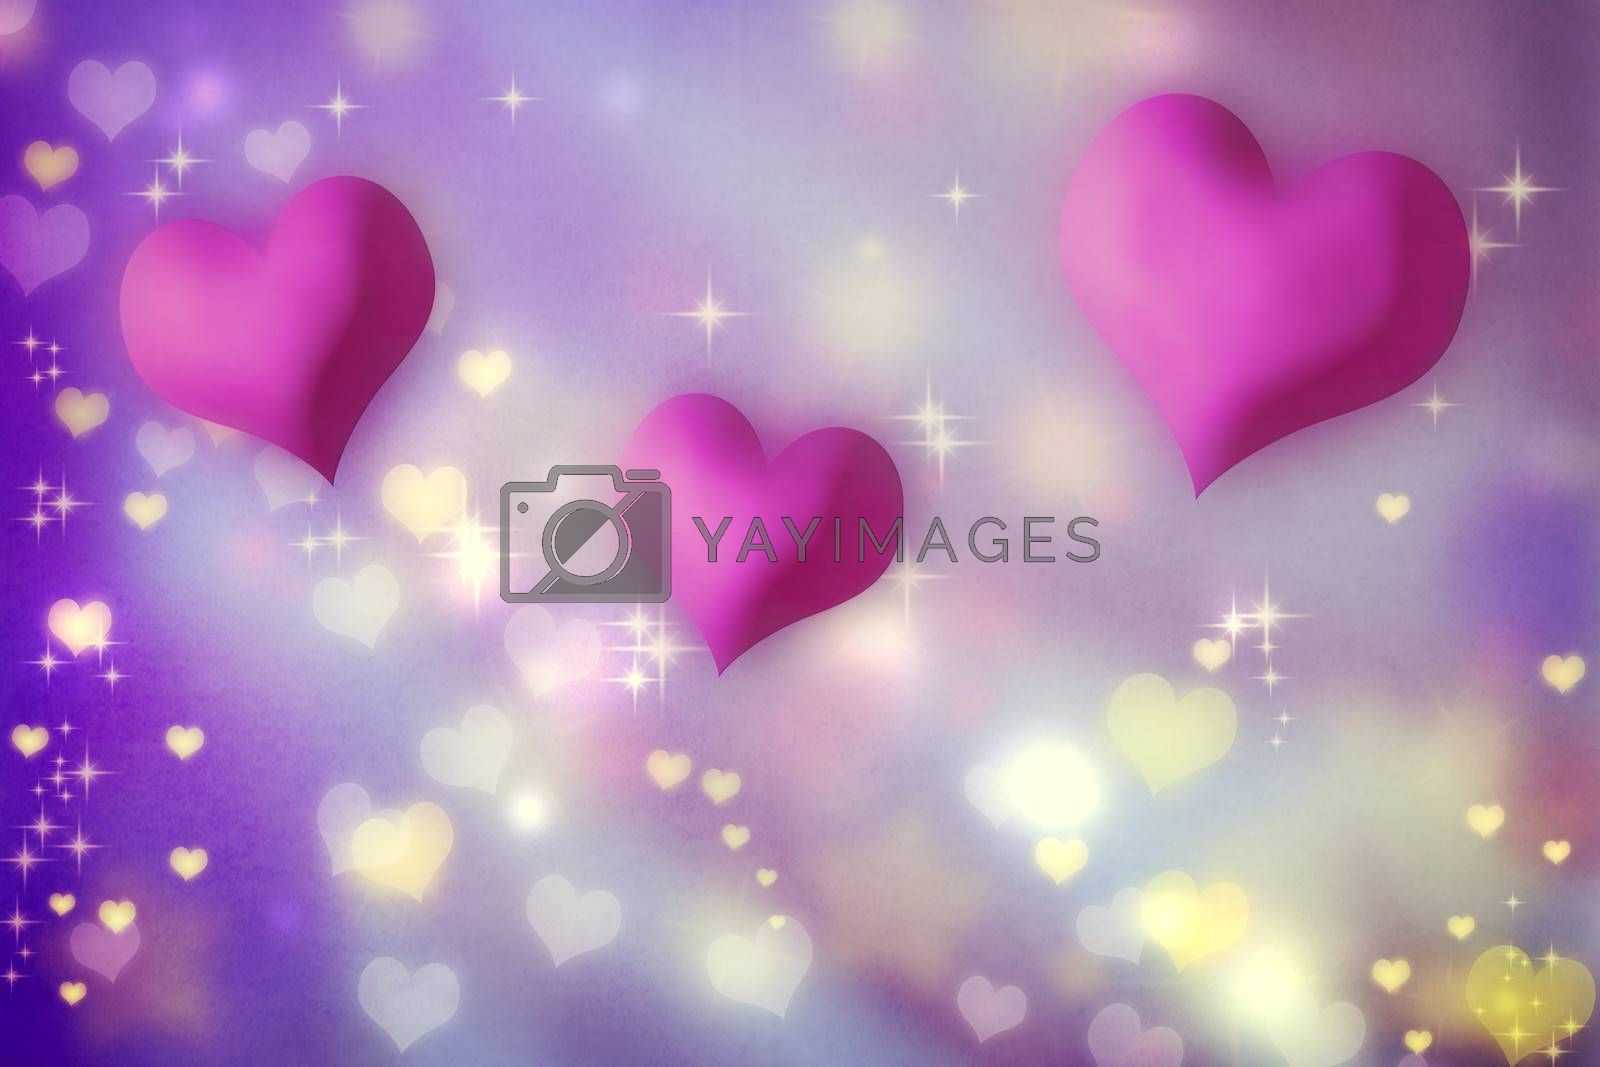 Royalty free image of Pink hearts on purple background by melpomene